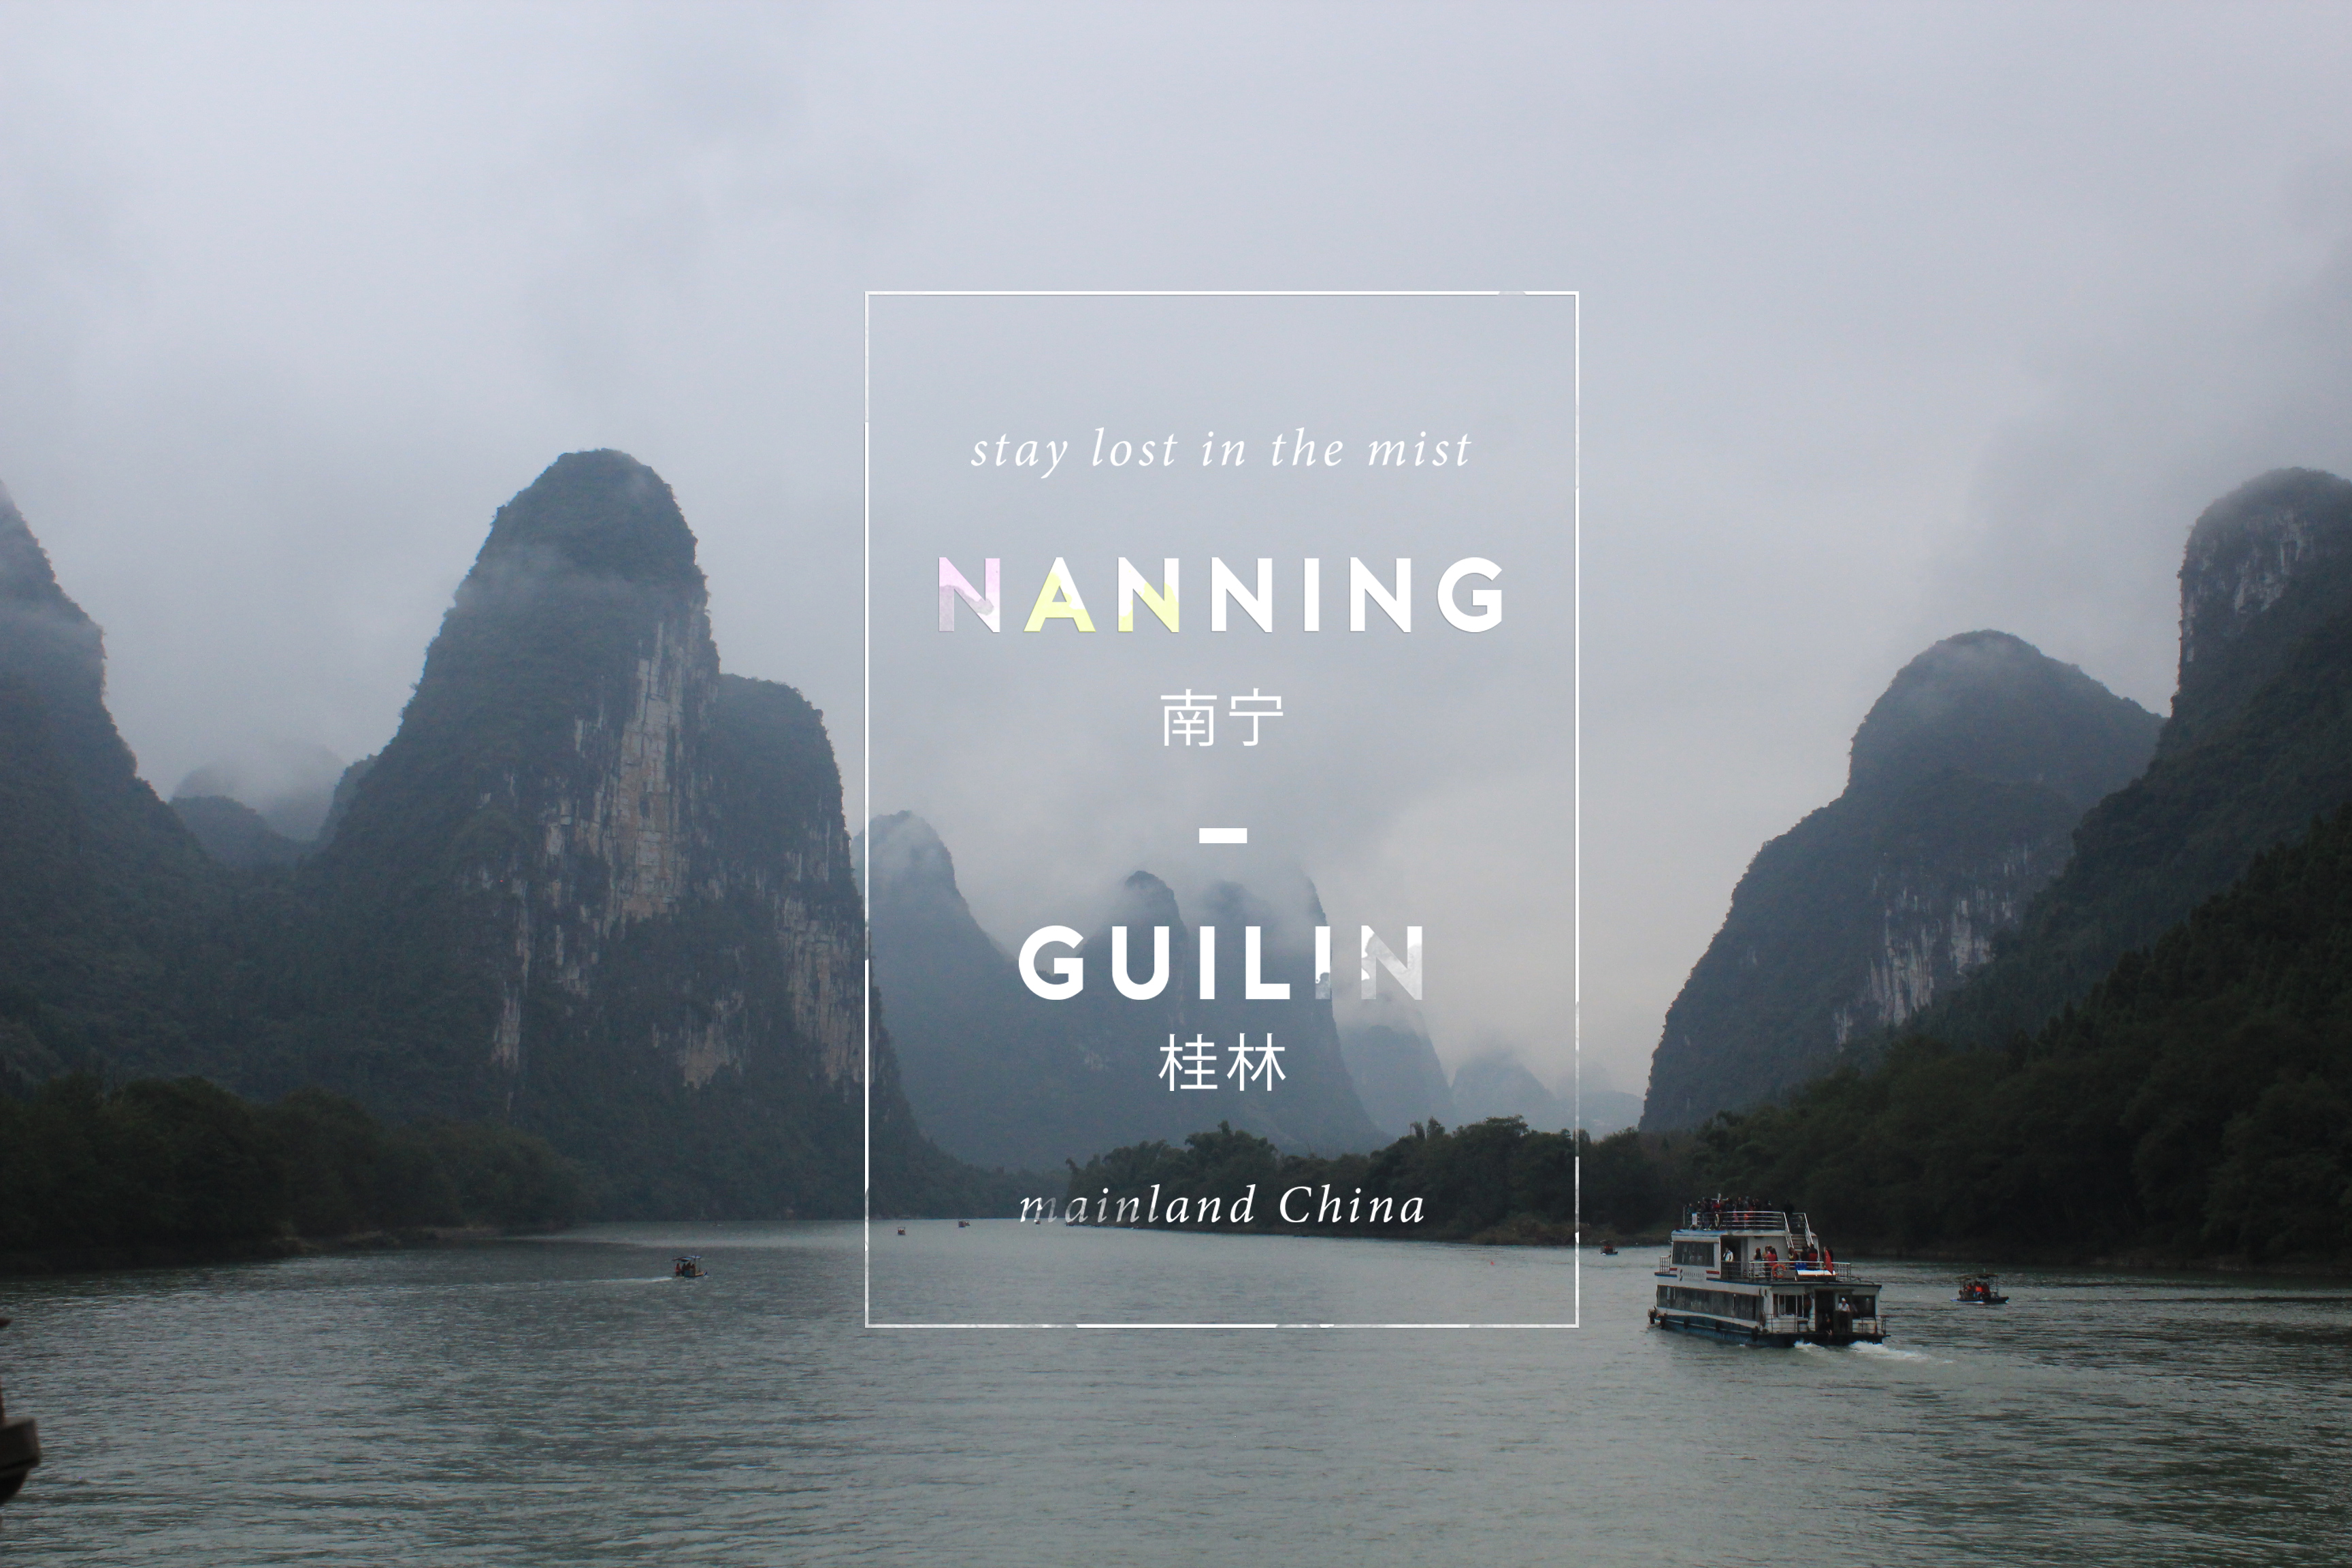 Stay lost in the mist, NANNING-GUILIN